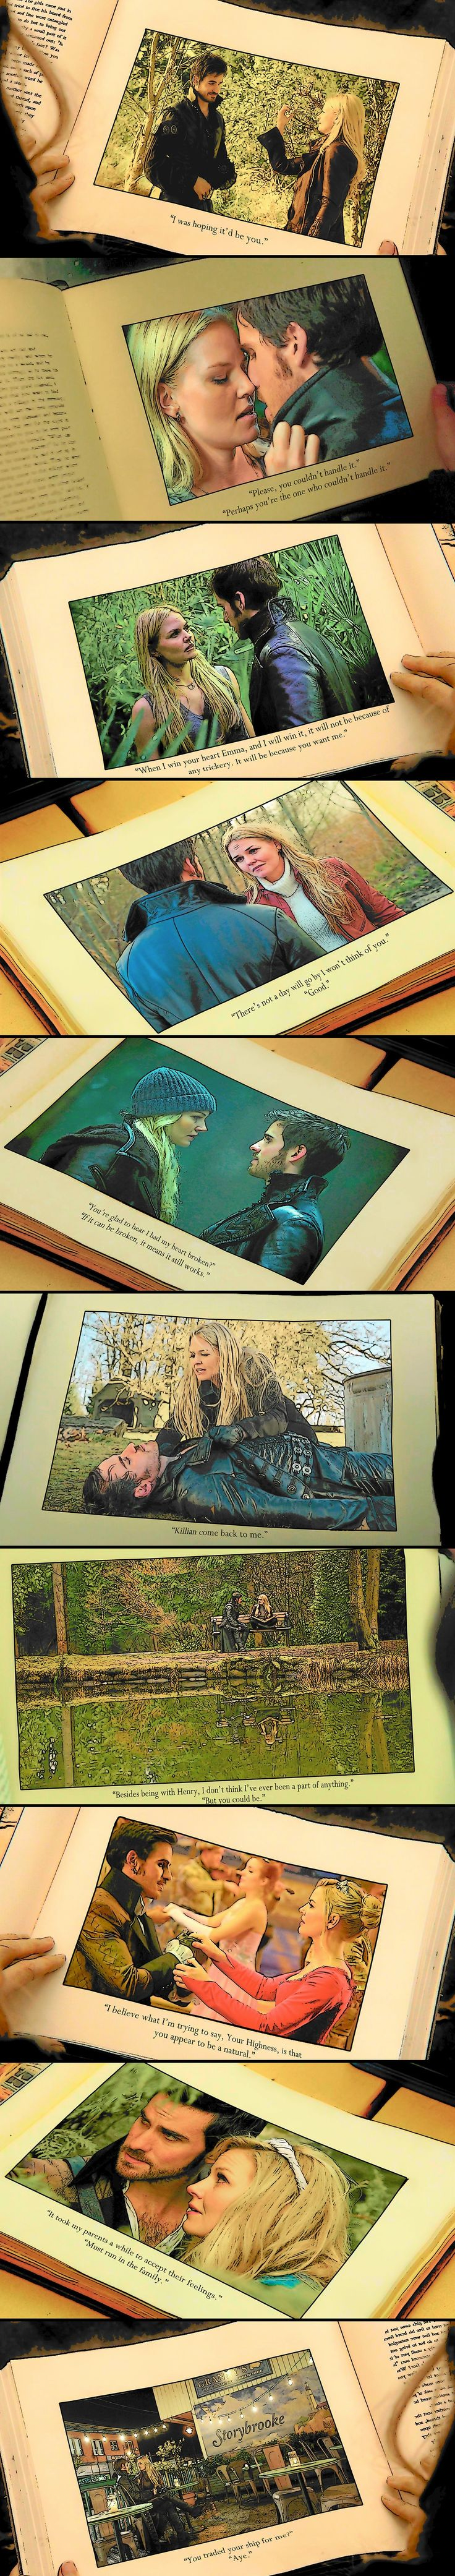 Captain Hook and Emma Swan - Once Upon a Time